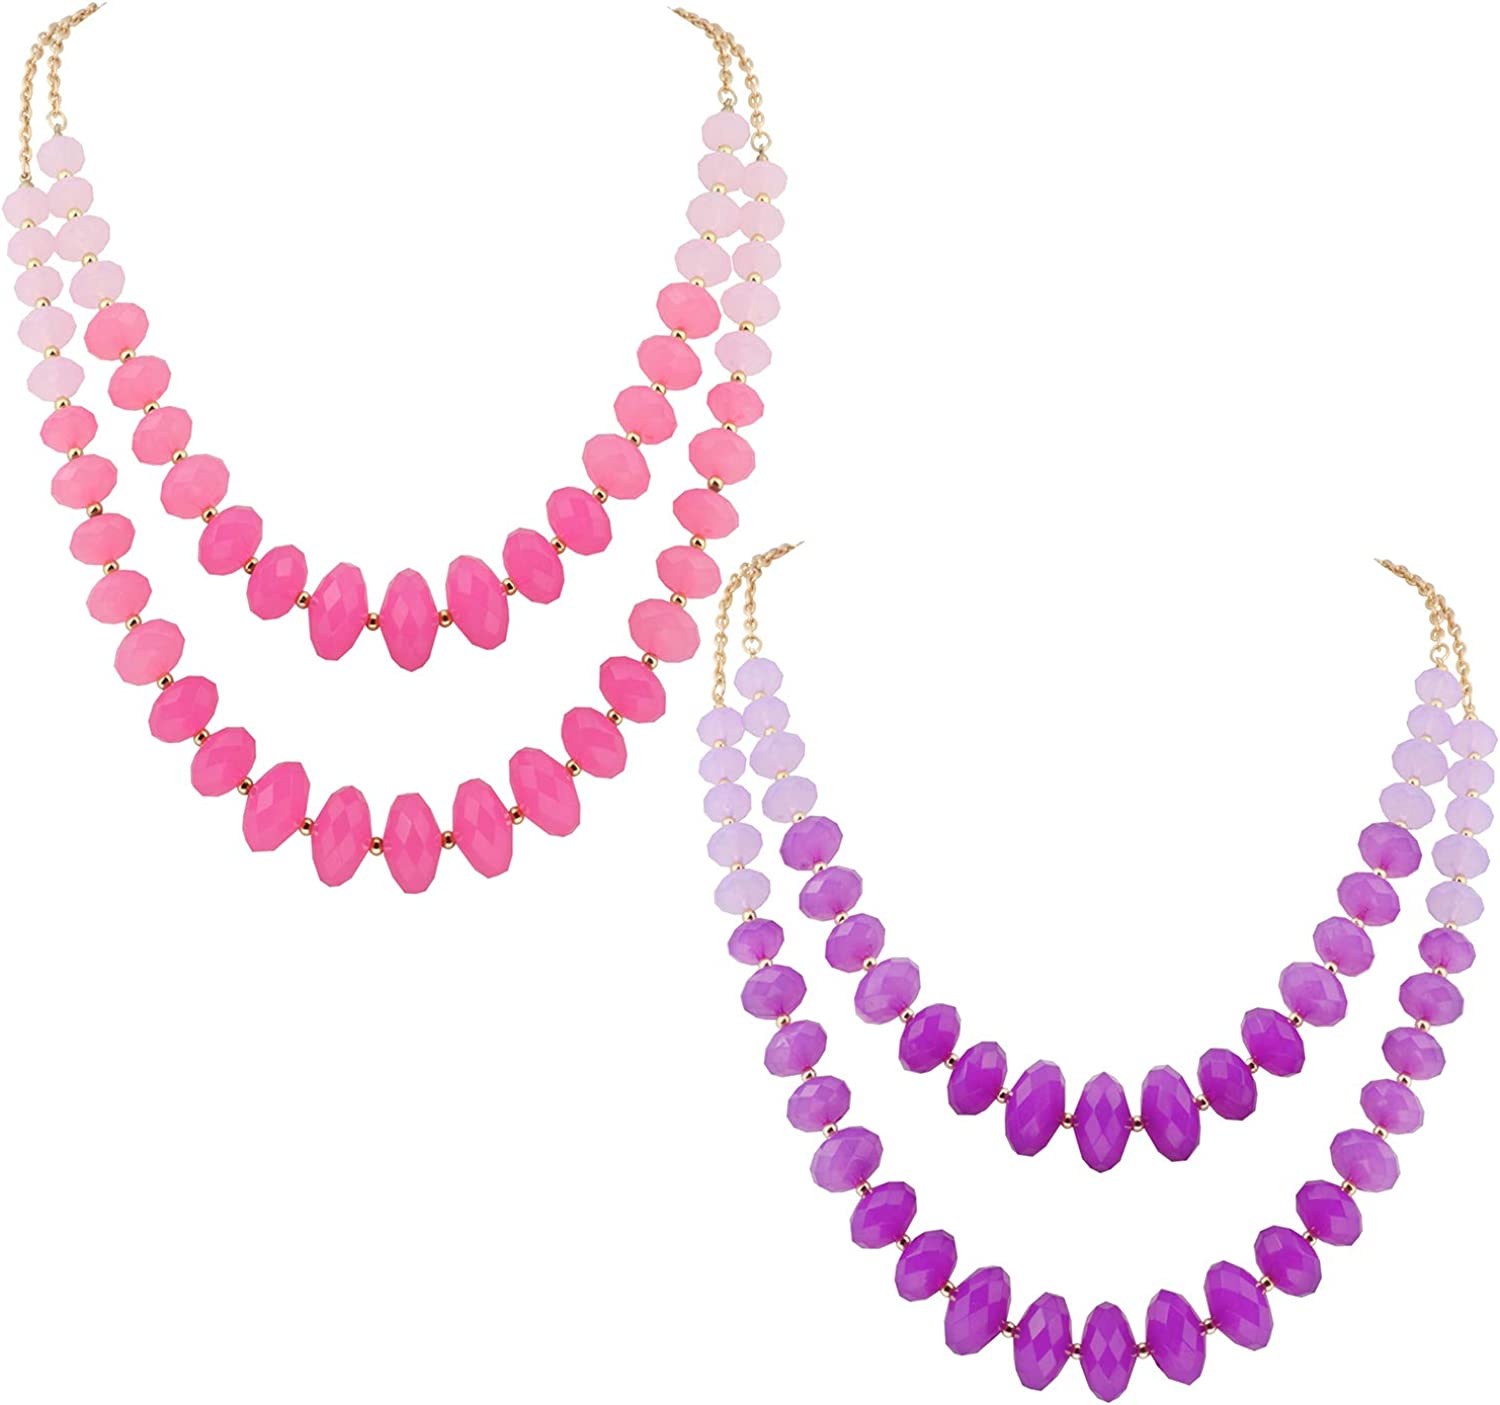 Coiris Gold Chain Gradient Color Big Acrylic Beads Statement Strand Necklaces